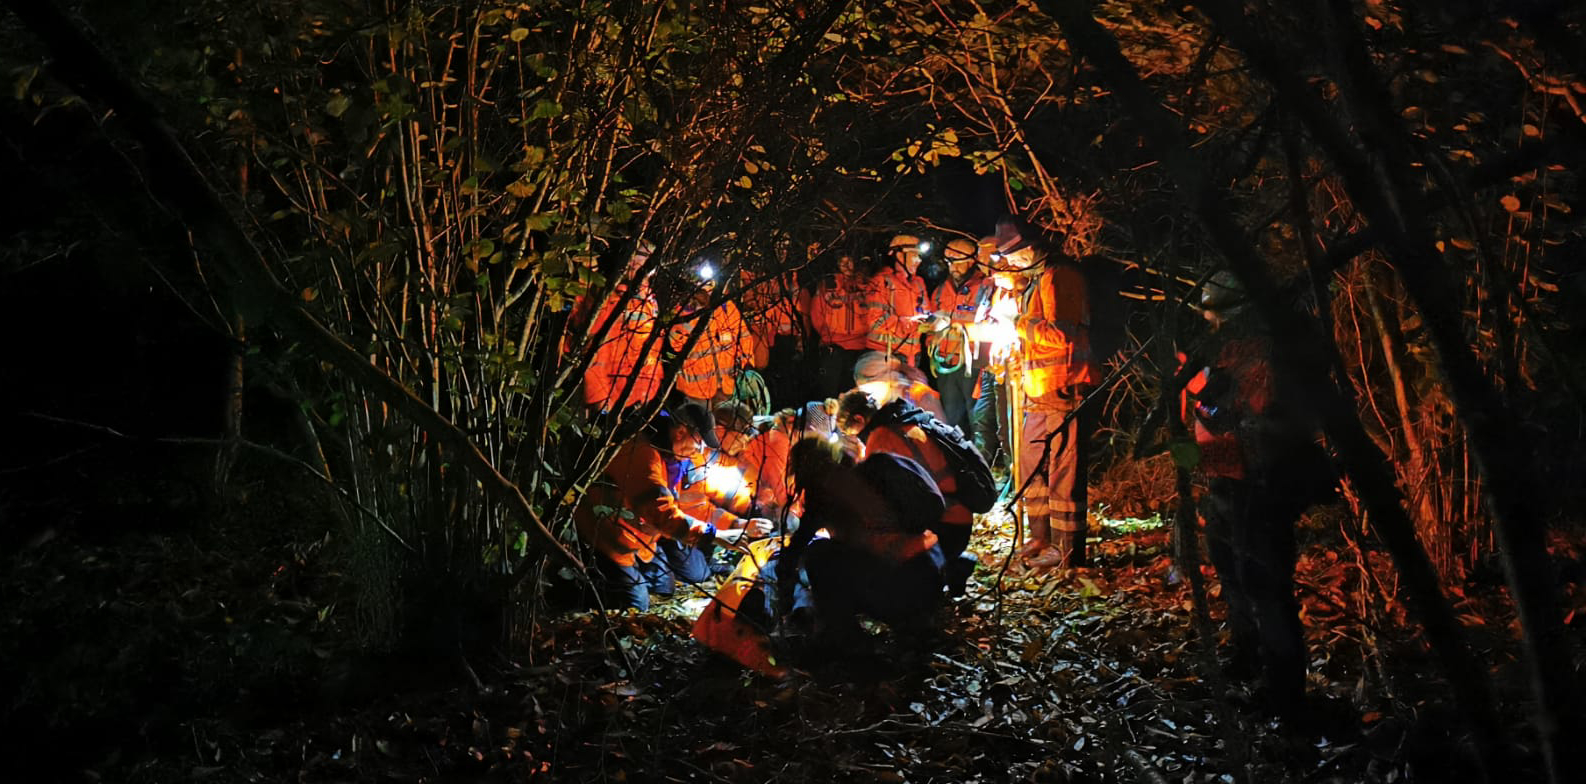 Searchers in the woods at night